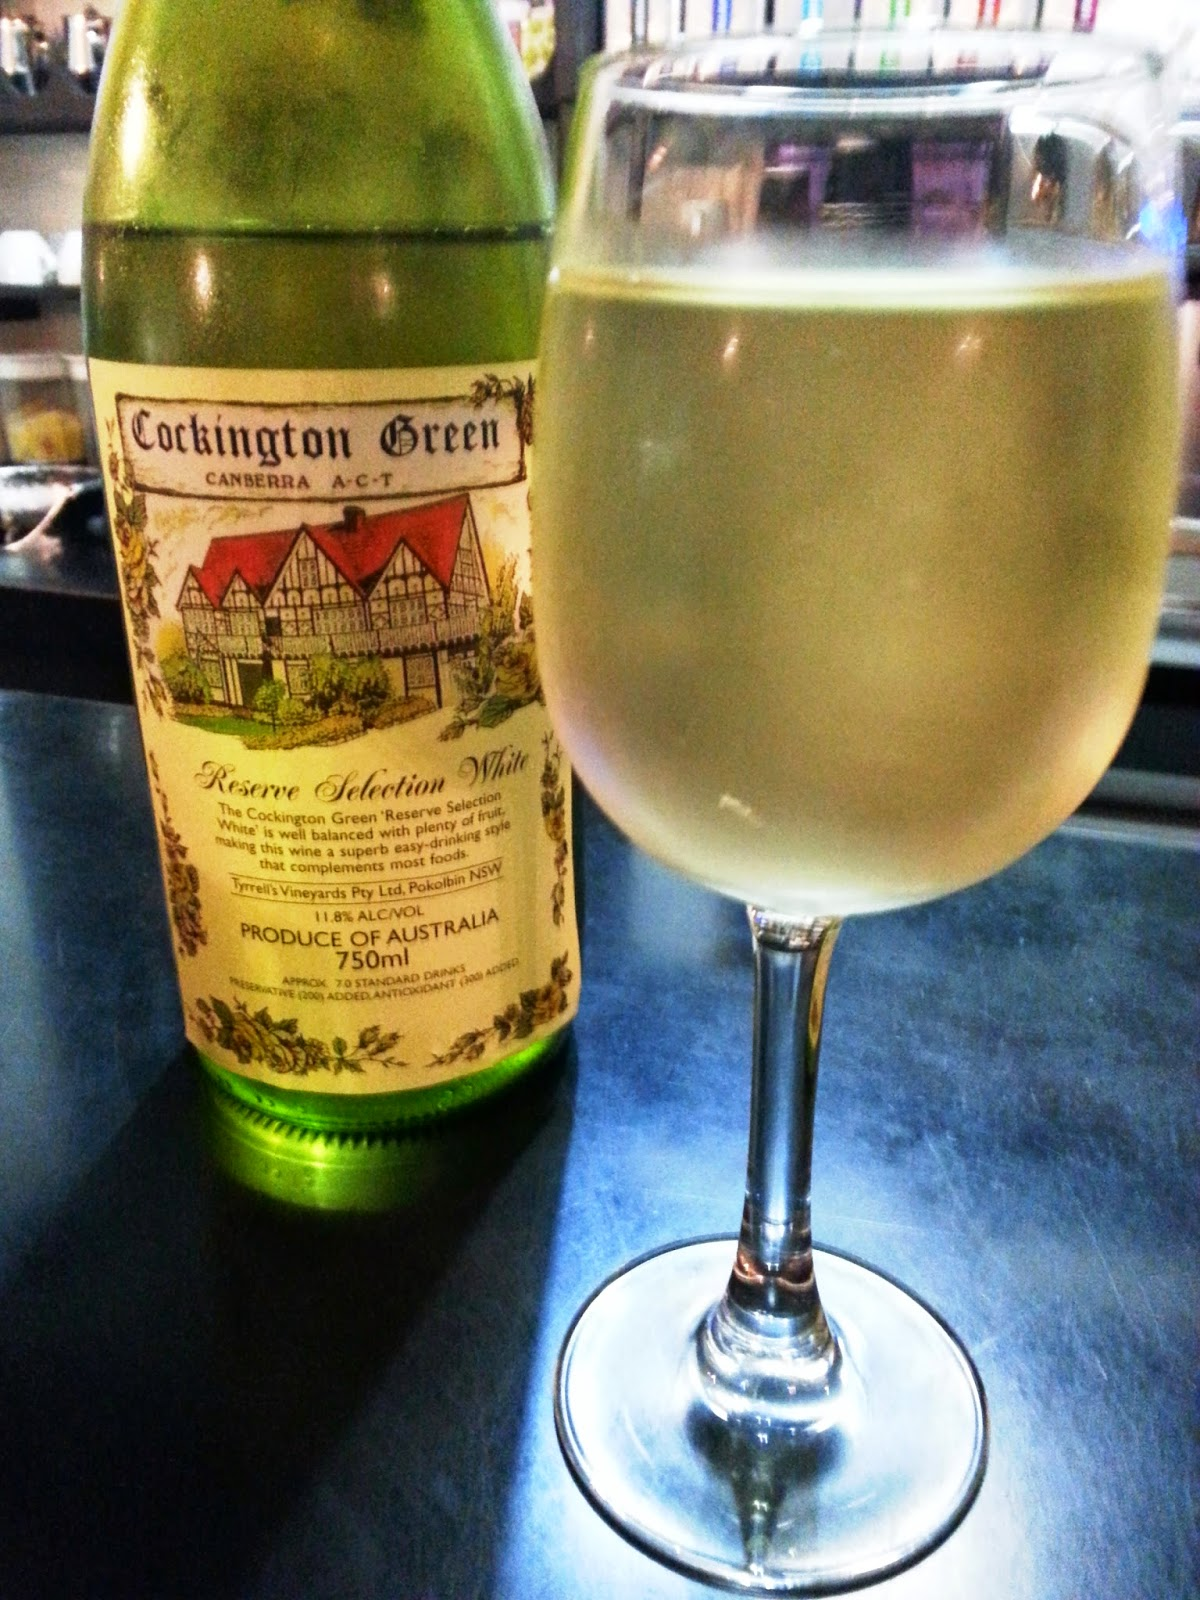 A bottle of special-label Cockington Green wine next to a glass of it.